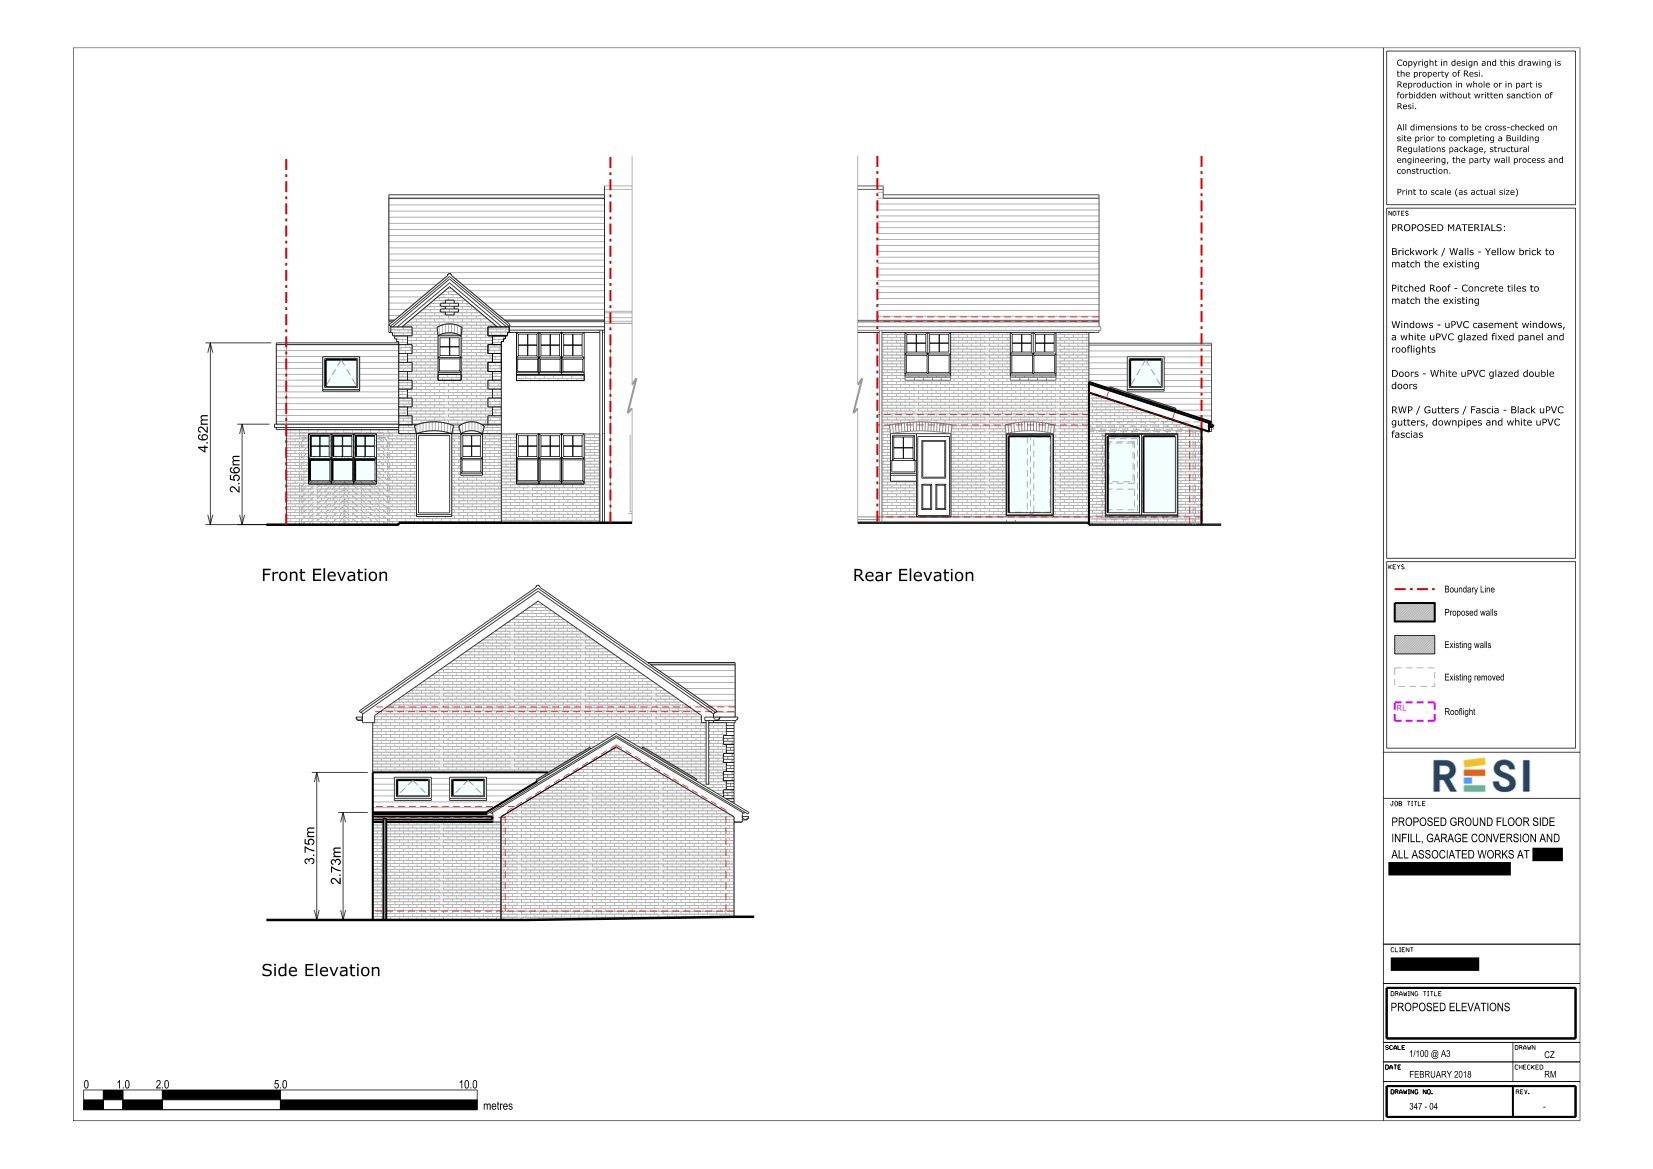 Architectural drawings 20   elevations